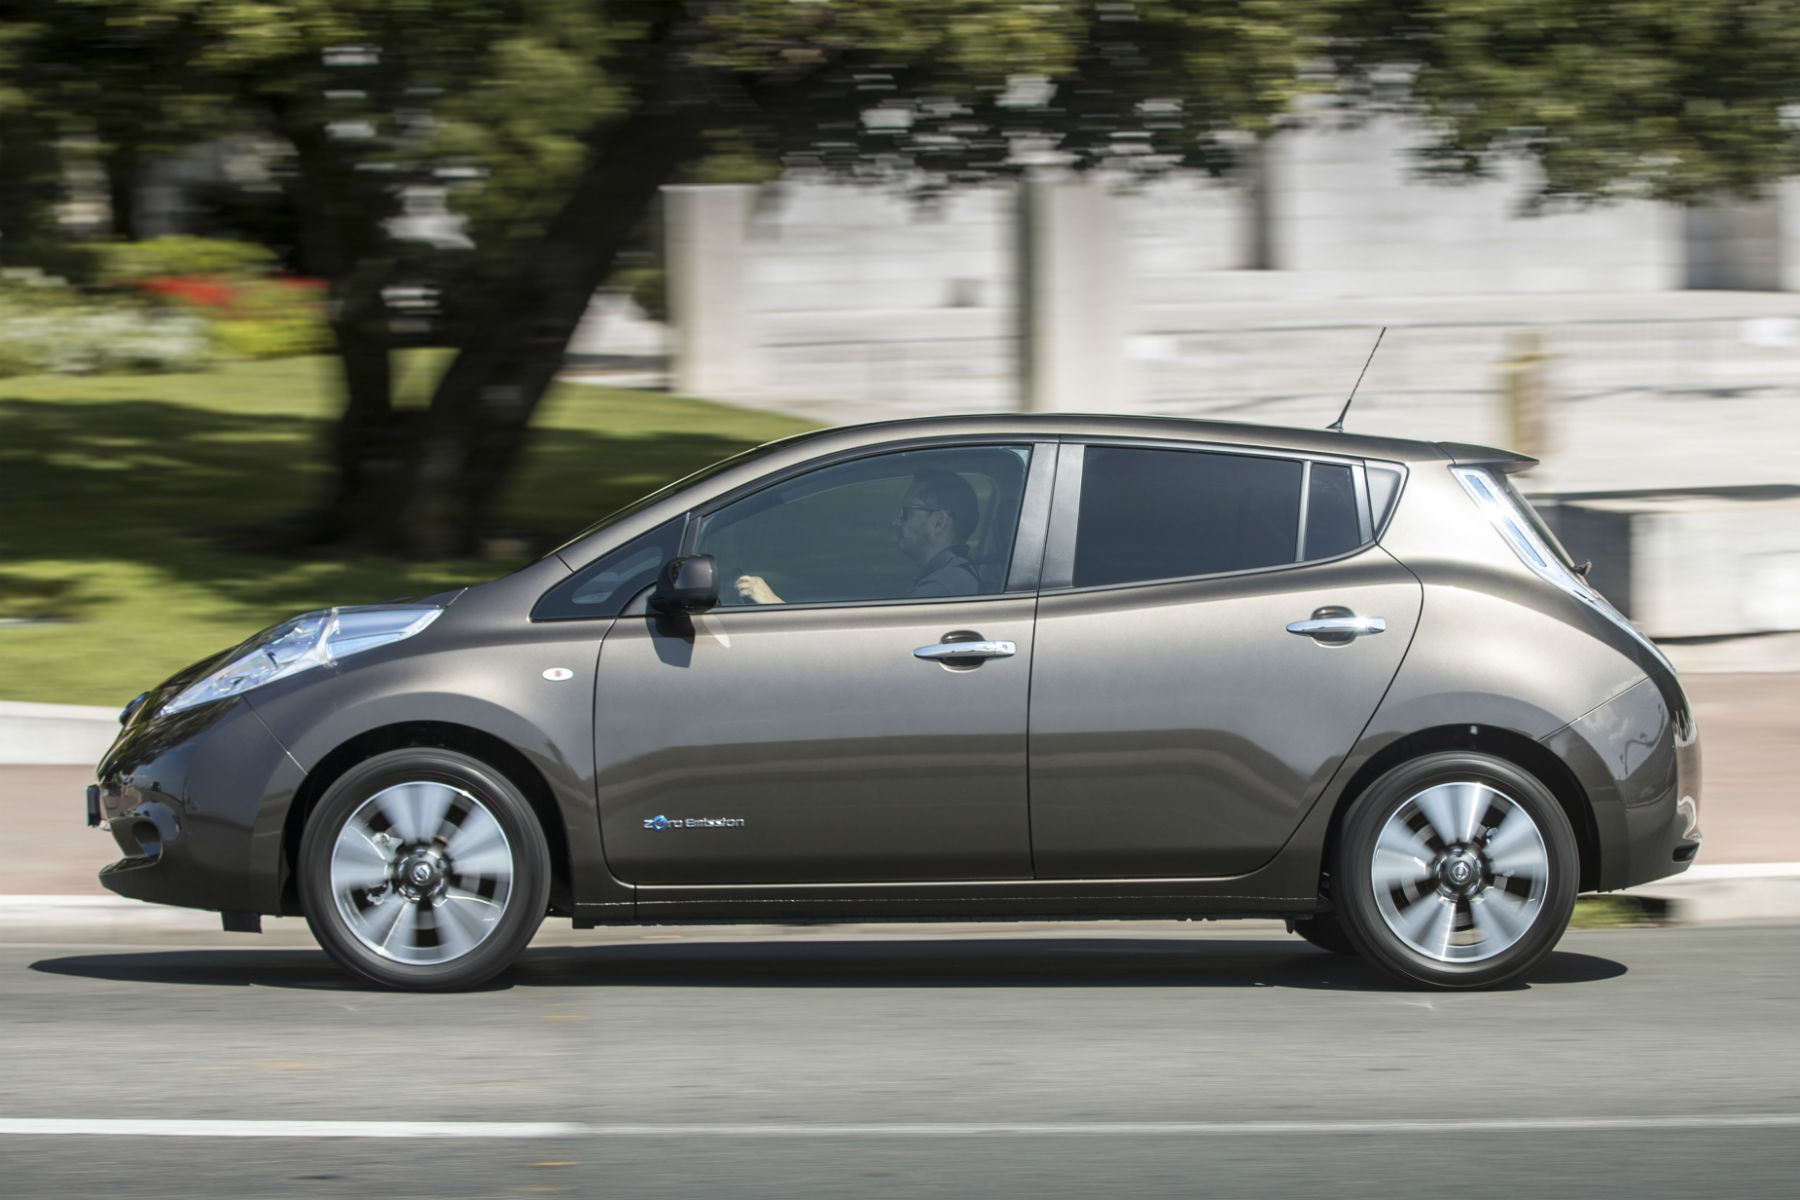 2015 Nissan Leaf 30kWh review: Running costs